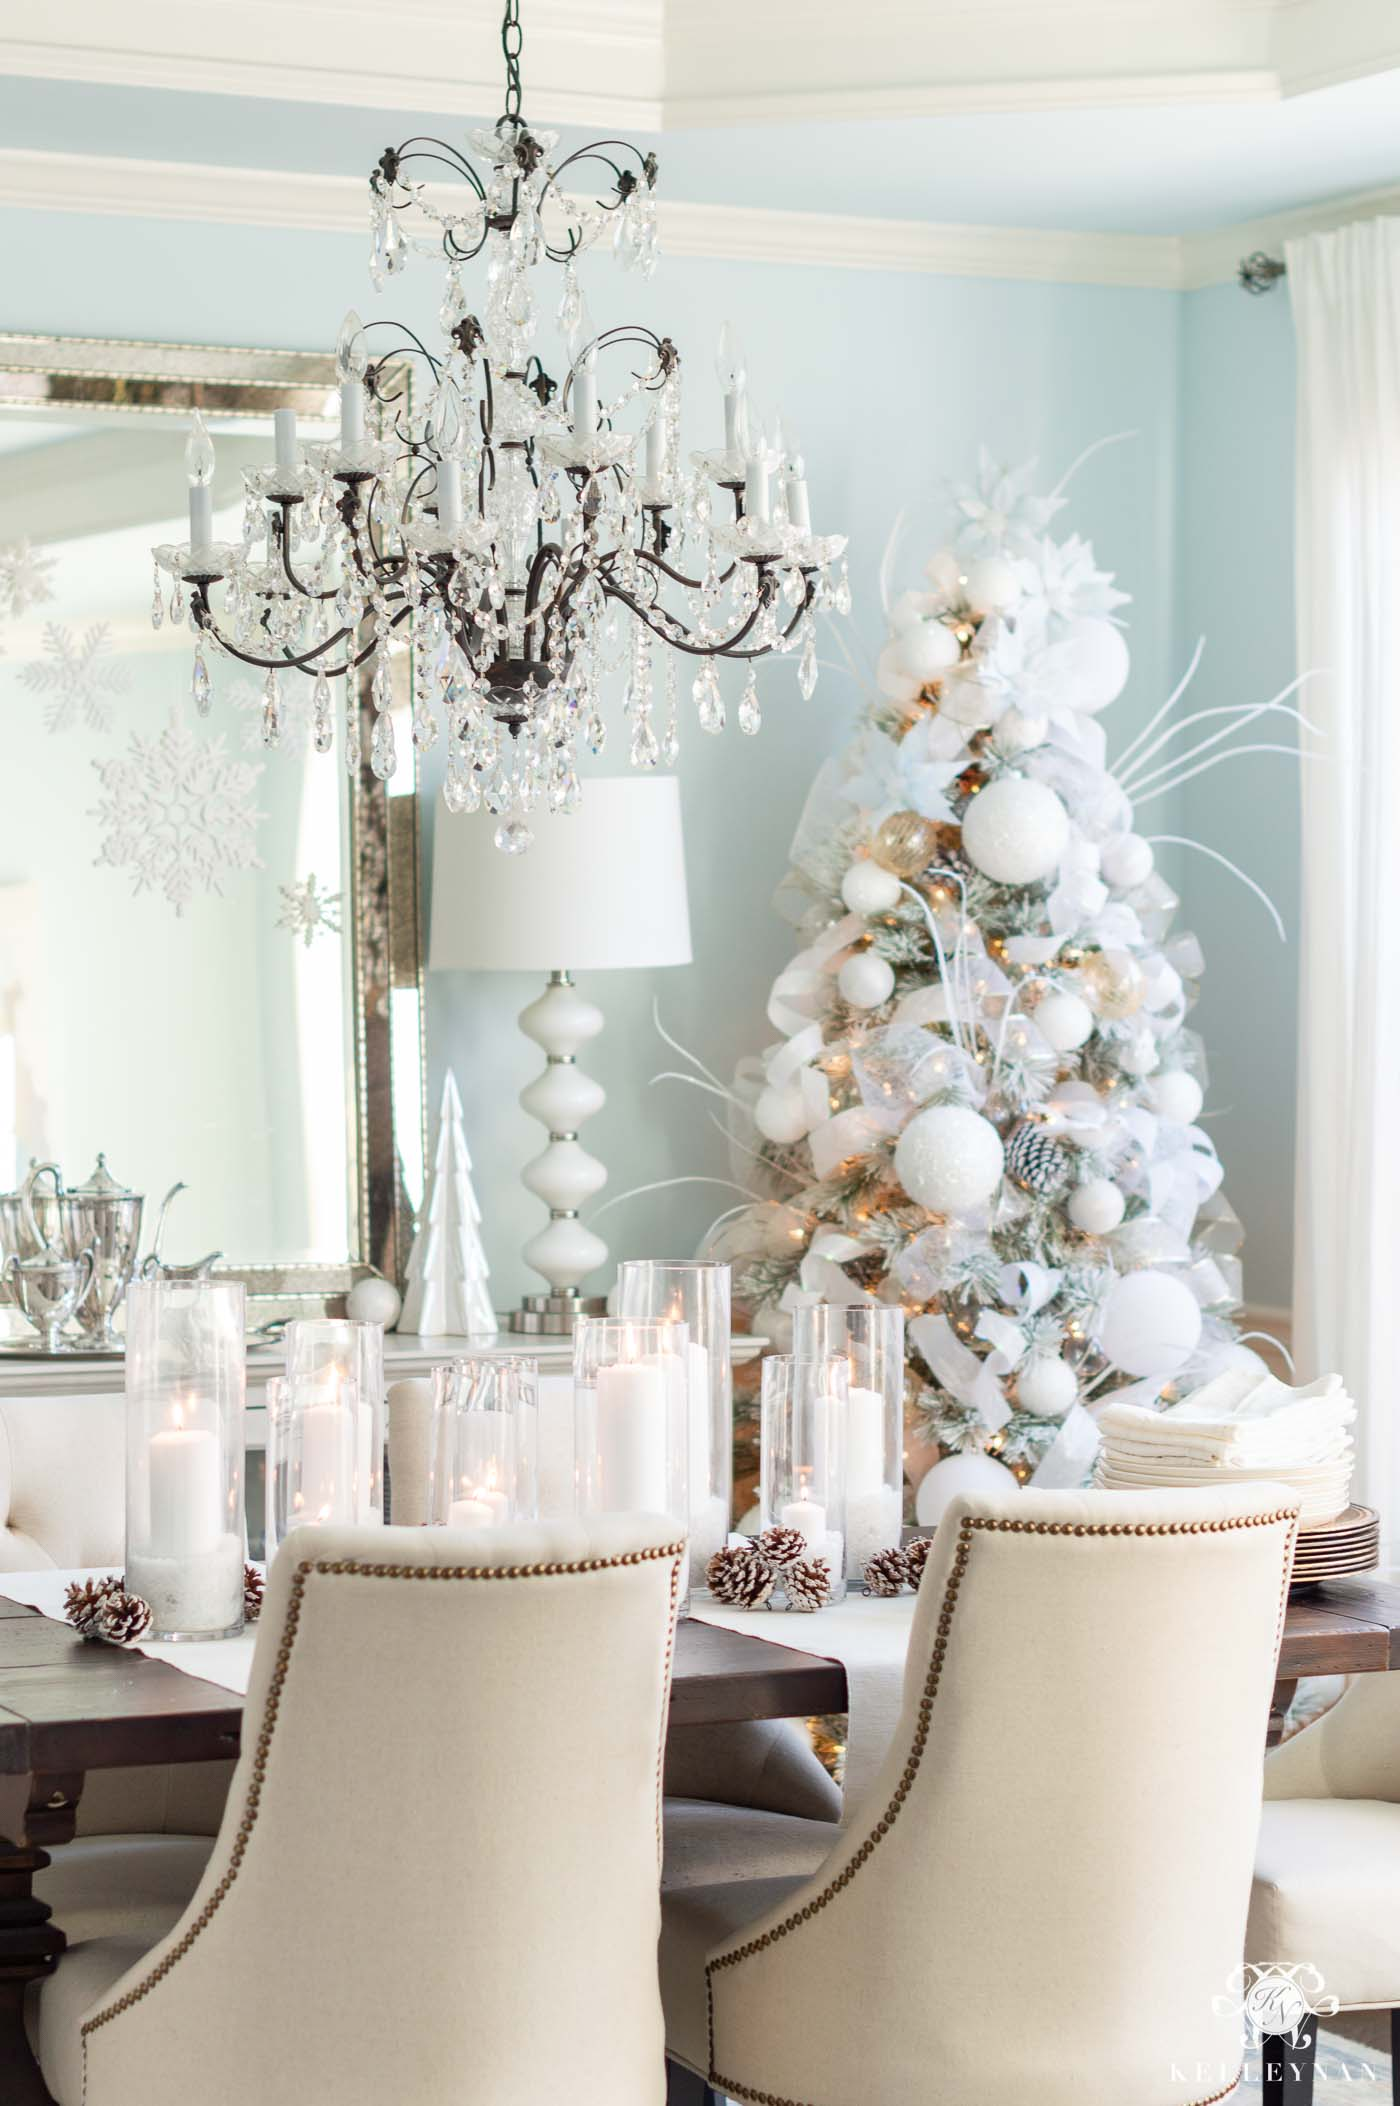 Frosty Christmas Decor in the Dining Room with Christmas Trees!